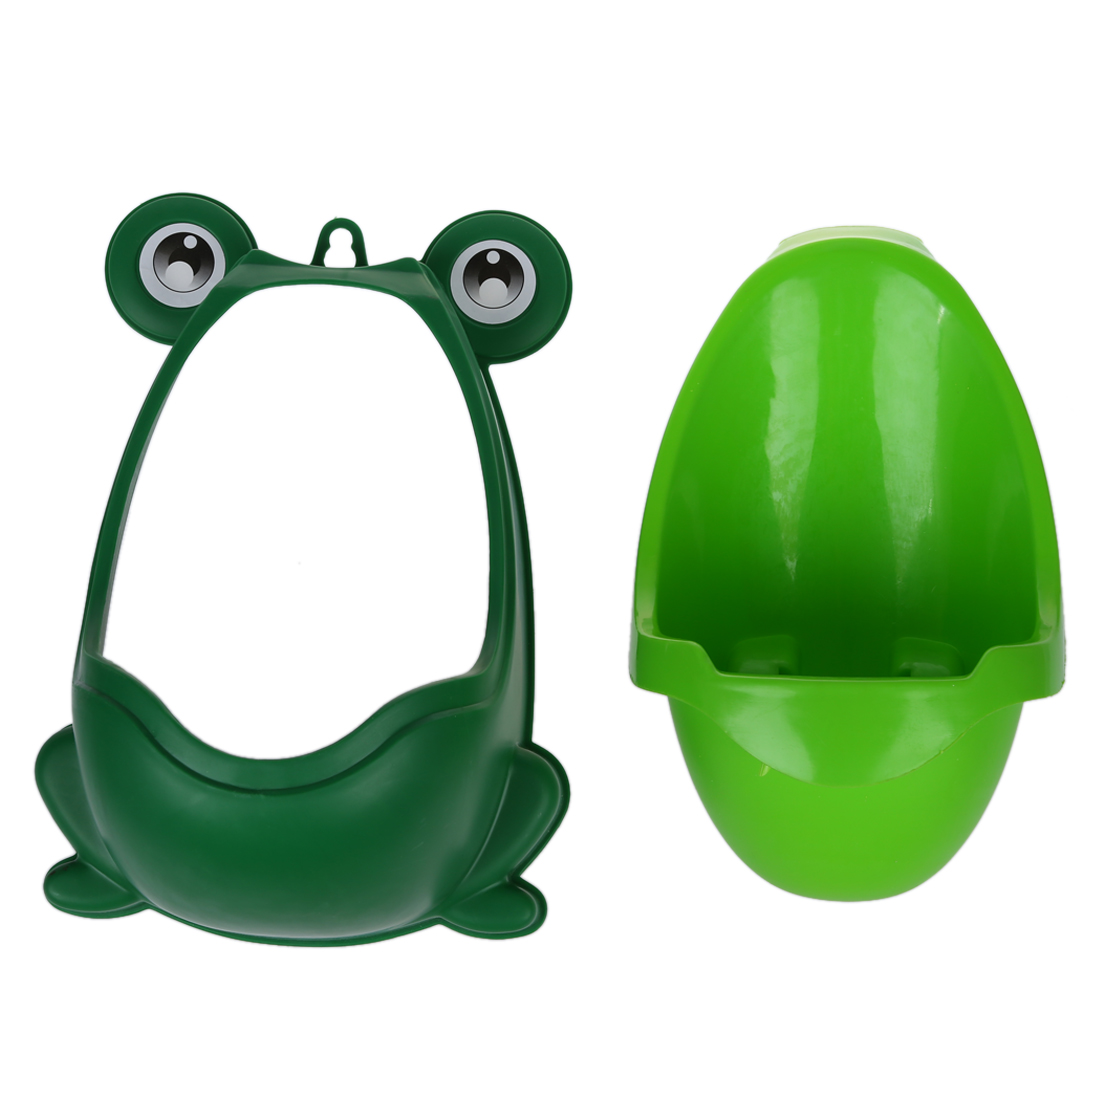 HOT SALE Baby Boys Kids Toddler Potty Training Pee Trainer Mini Toilet (Frog Green)